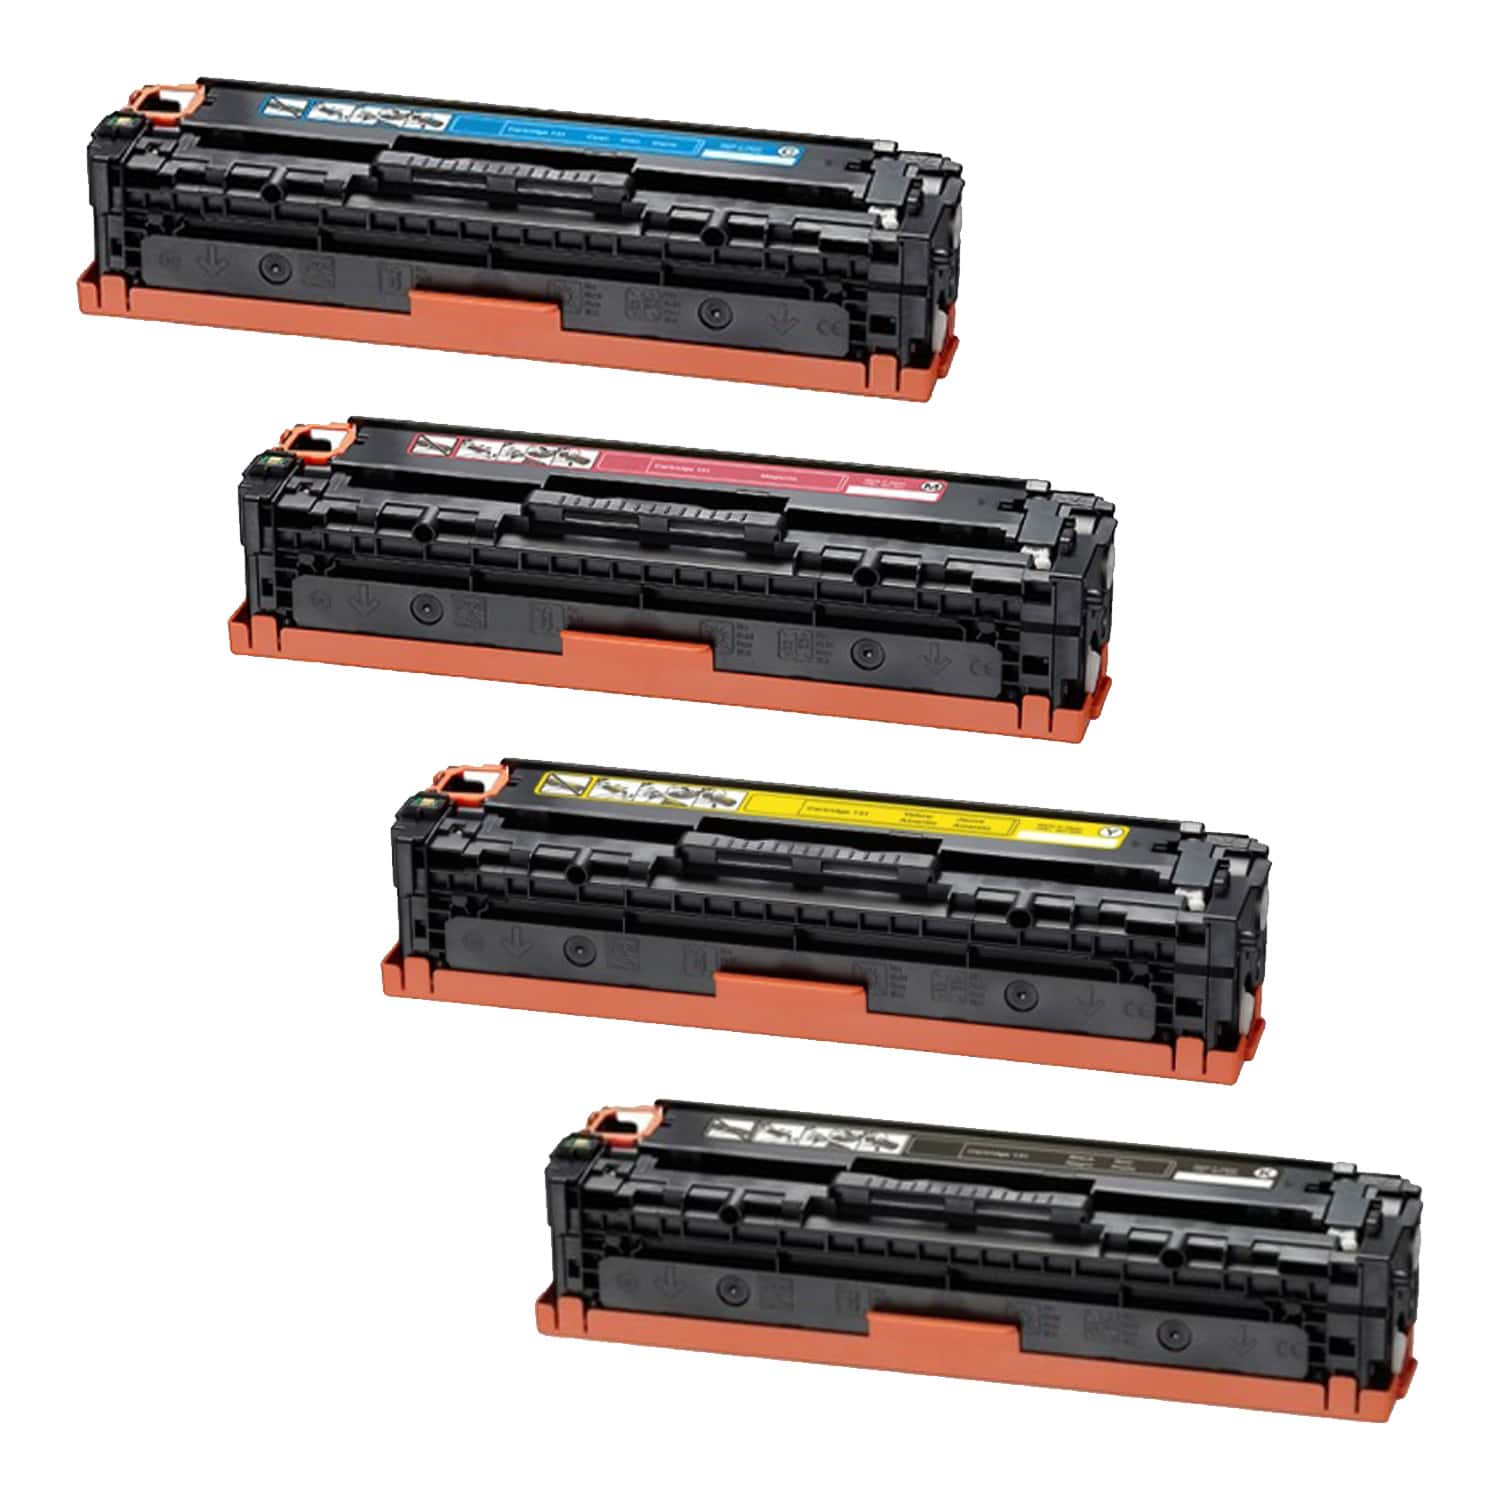 Compatible Canon 131H Toner High Capacity Pack - 4 Cartridges